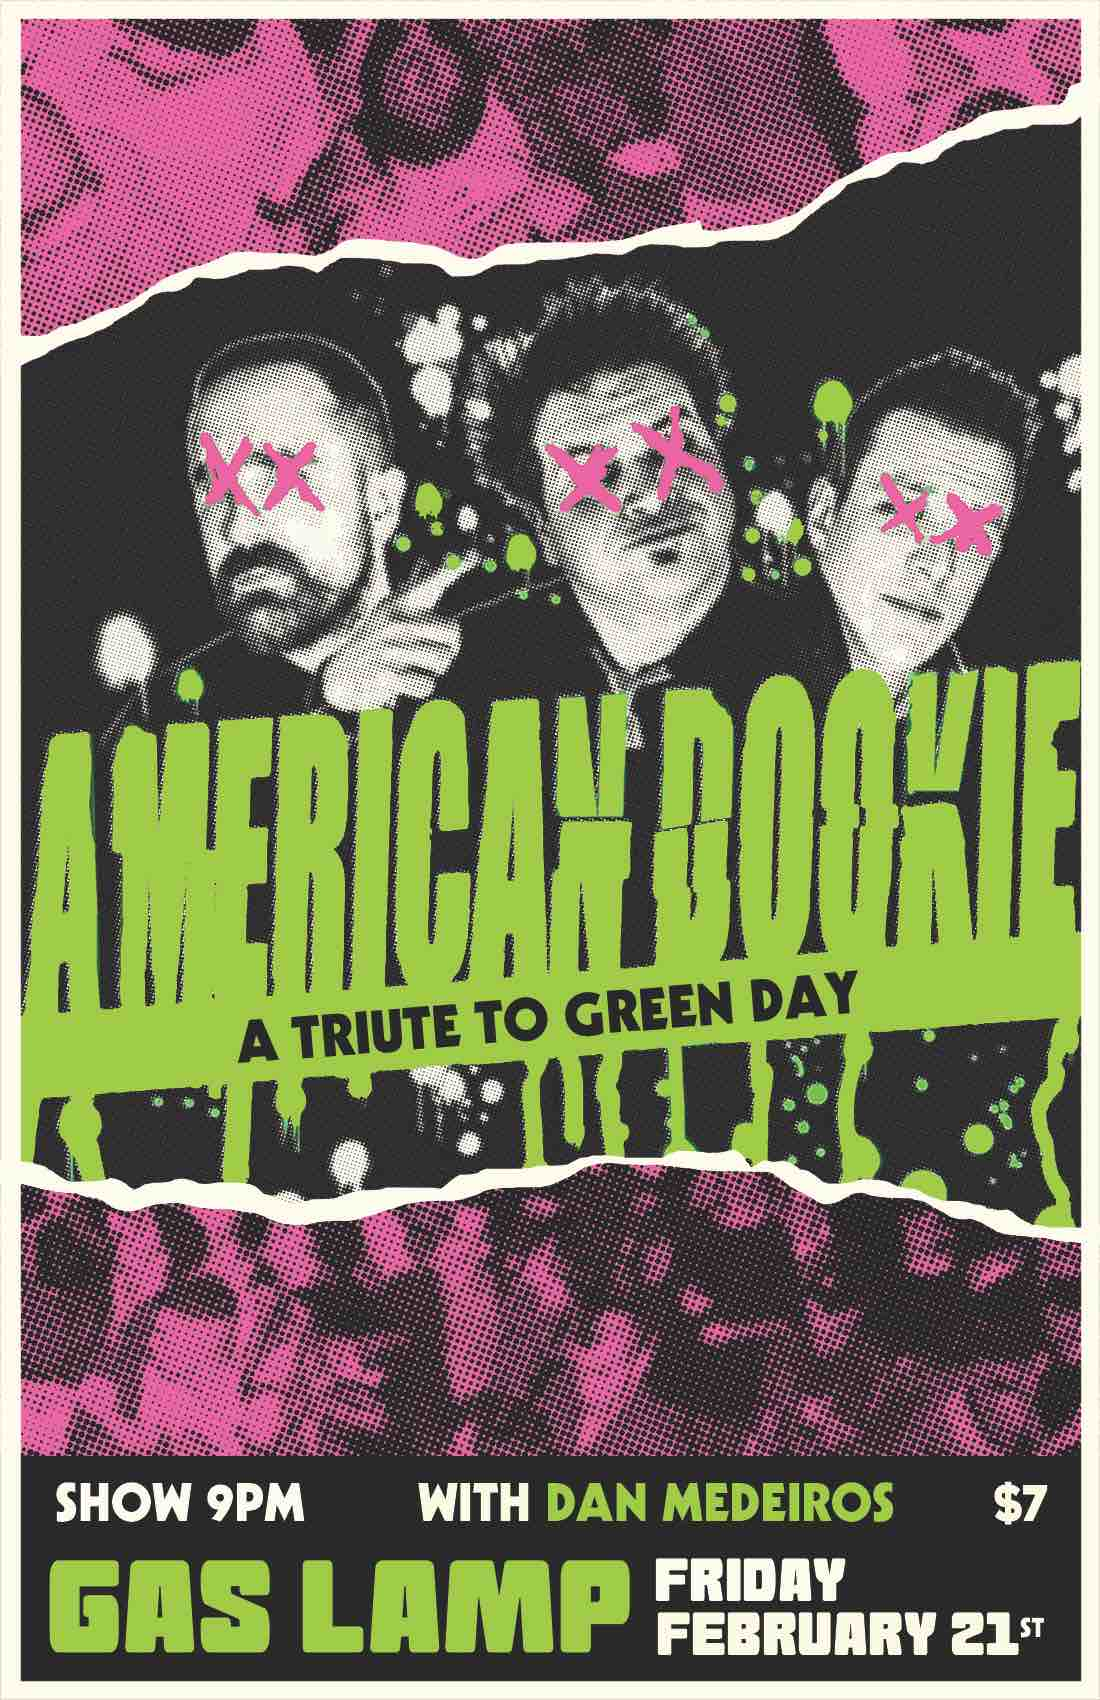 American_dookie_feb_21